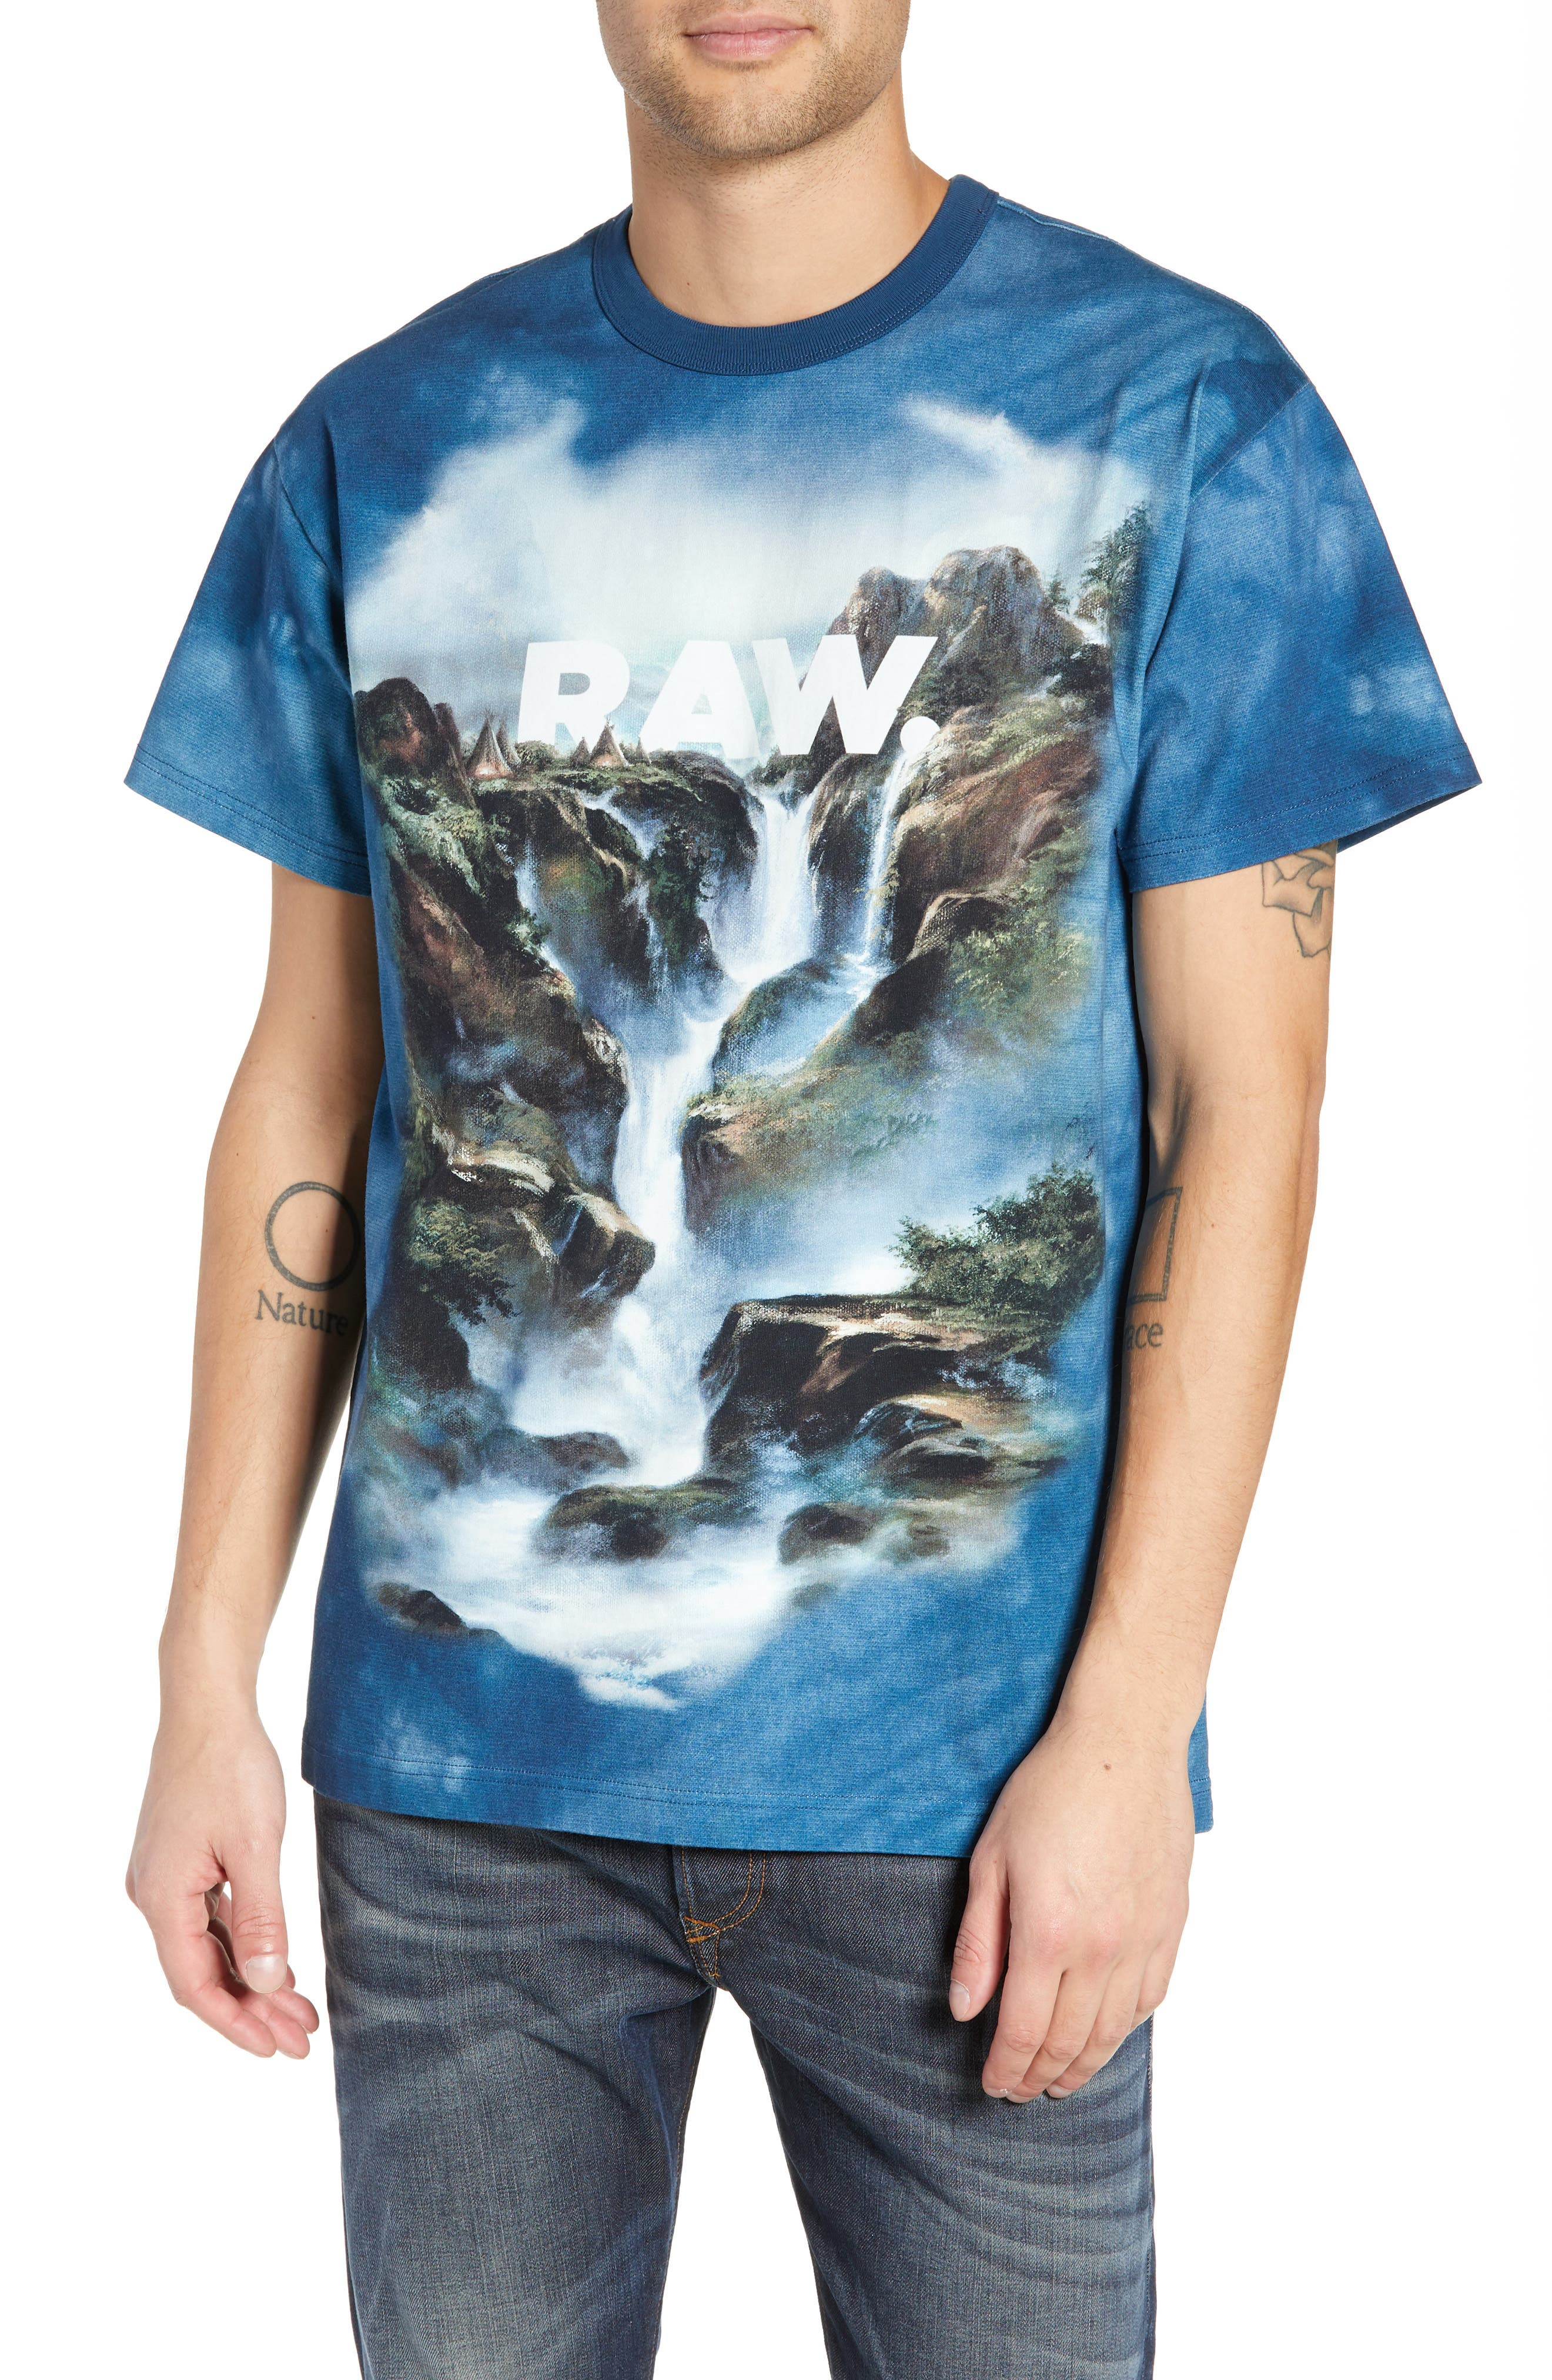 G-STAR RAW G-Star Cyrer Waterfall Loose T-Shirt in Teal Blue